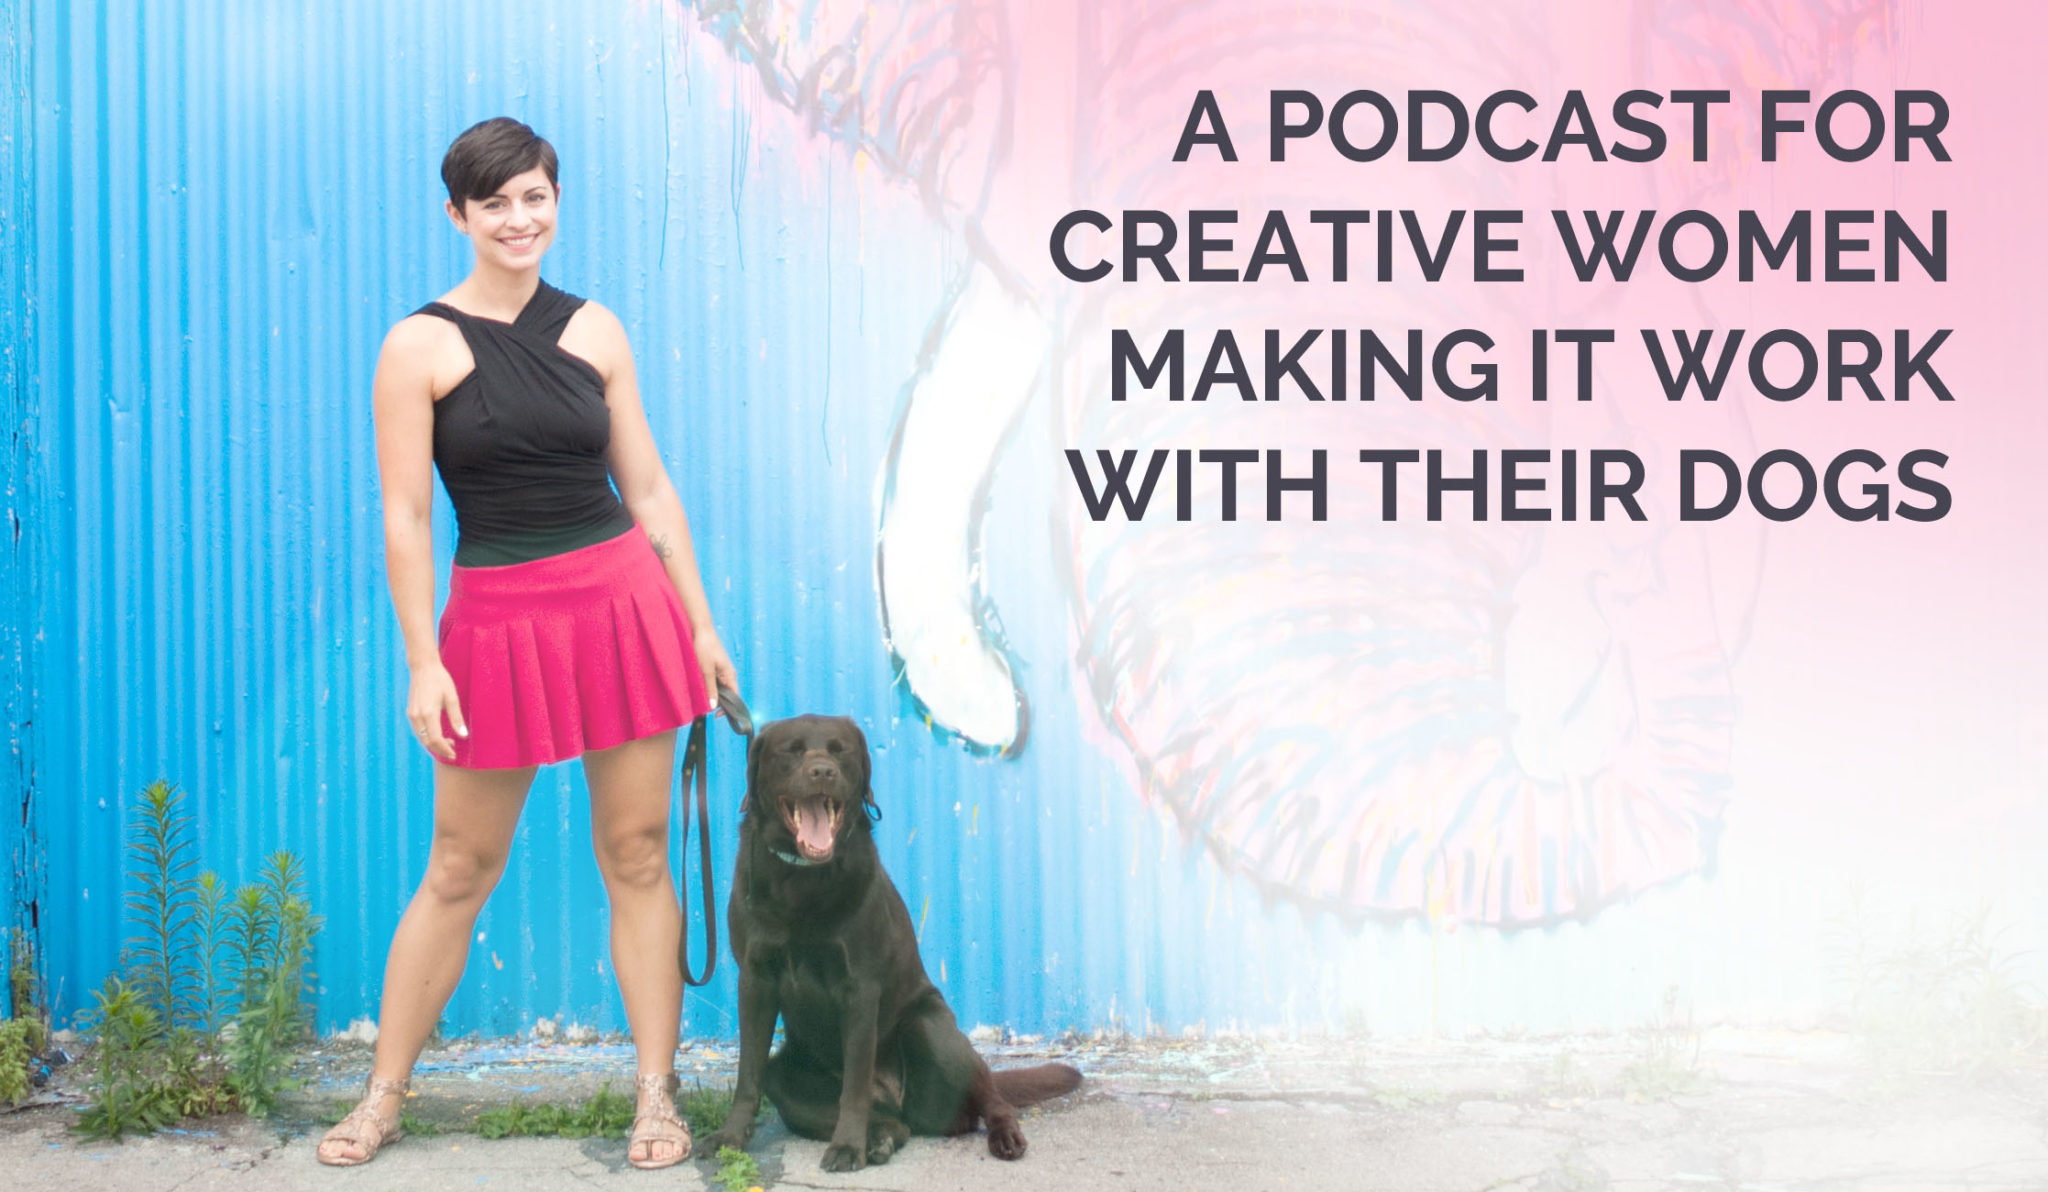 Podcast for Creative Women Making it Work with their Dogs